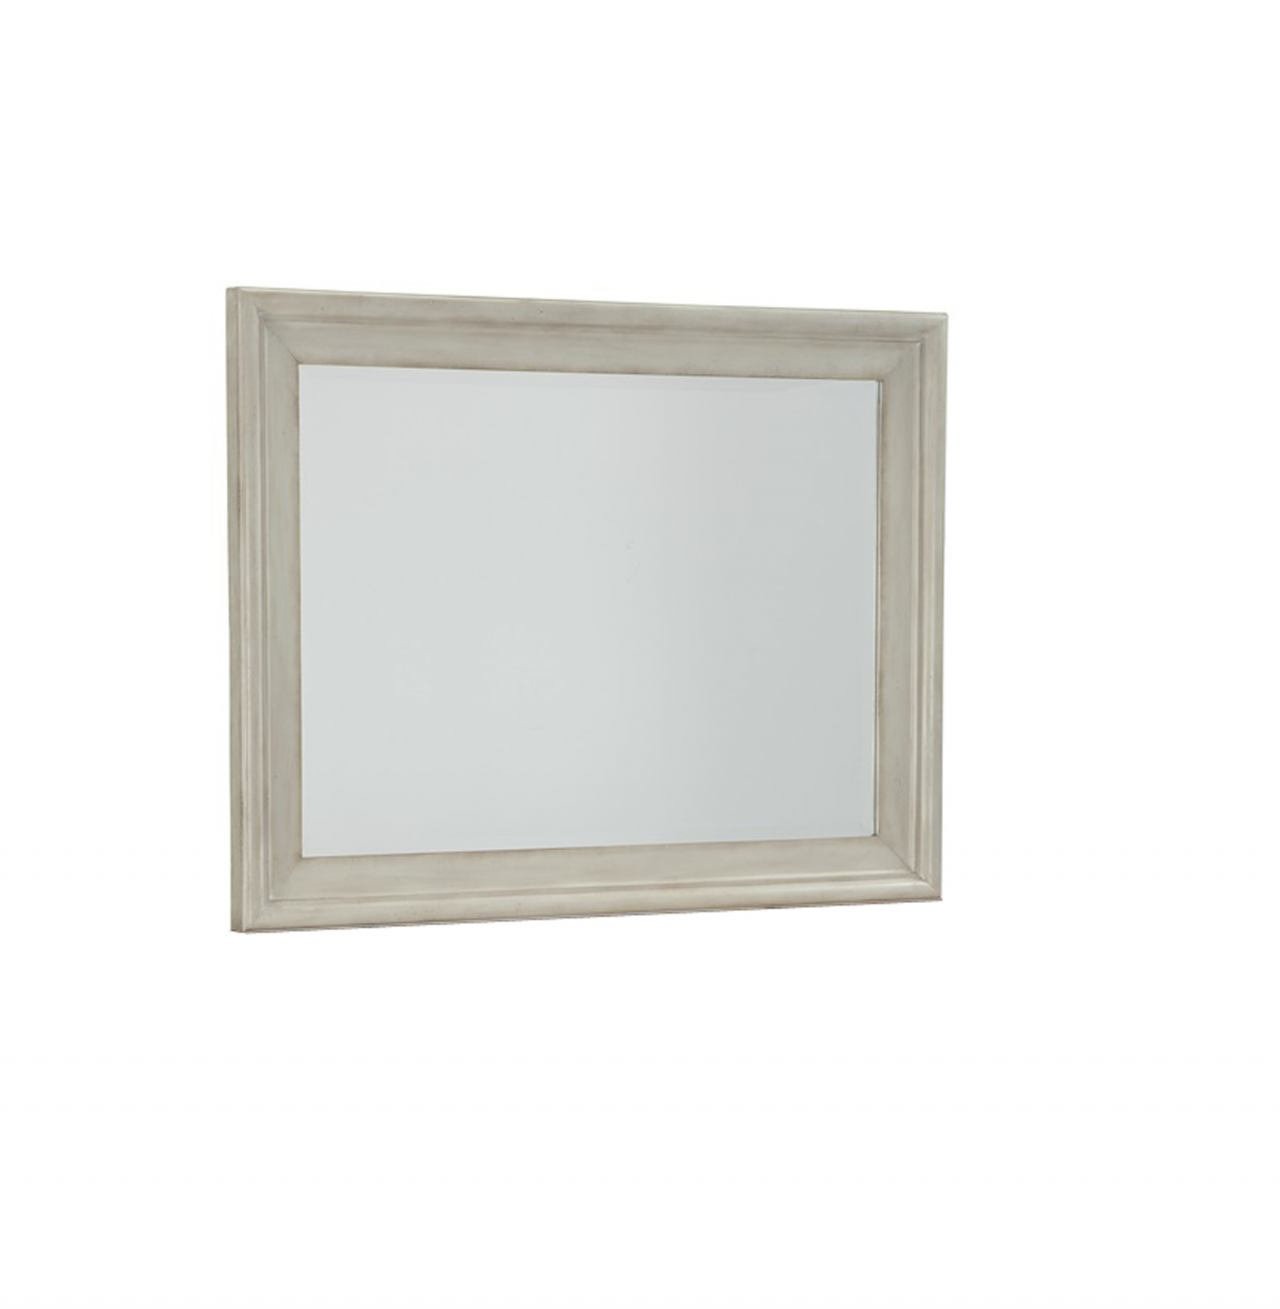 Cresent Fine Furniture Cottage Landscape Mirror in Antique White 201-102 CLEARANCE